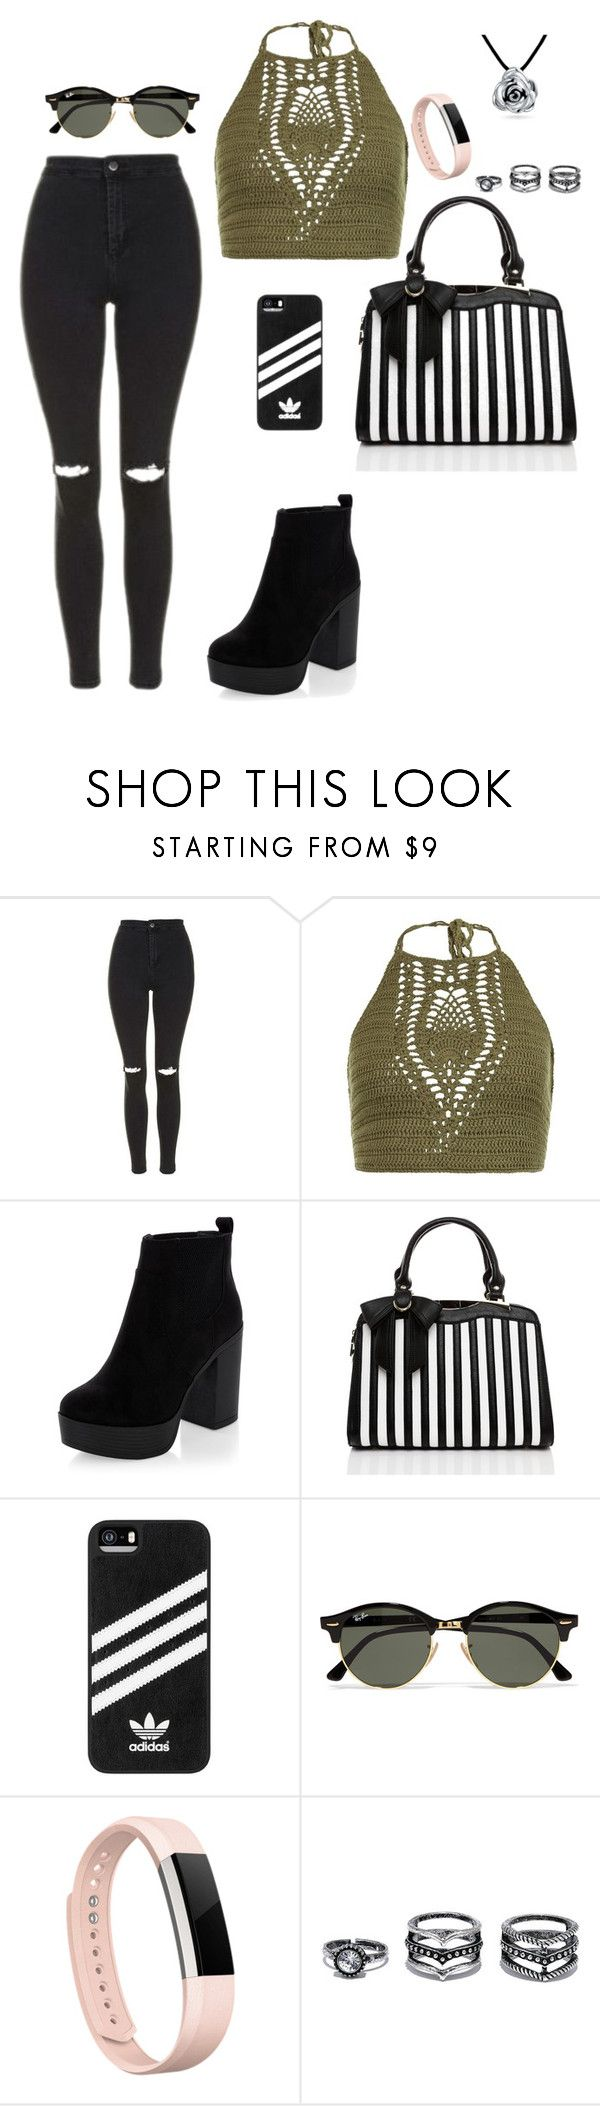 """Look but don't touch"" by foreverfashionqueen ❤ liked on Polyvore featuring Topshop, New Look, adidas, Ray-Ban, Fitbit, Lulu*s and Bling Jewelry"